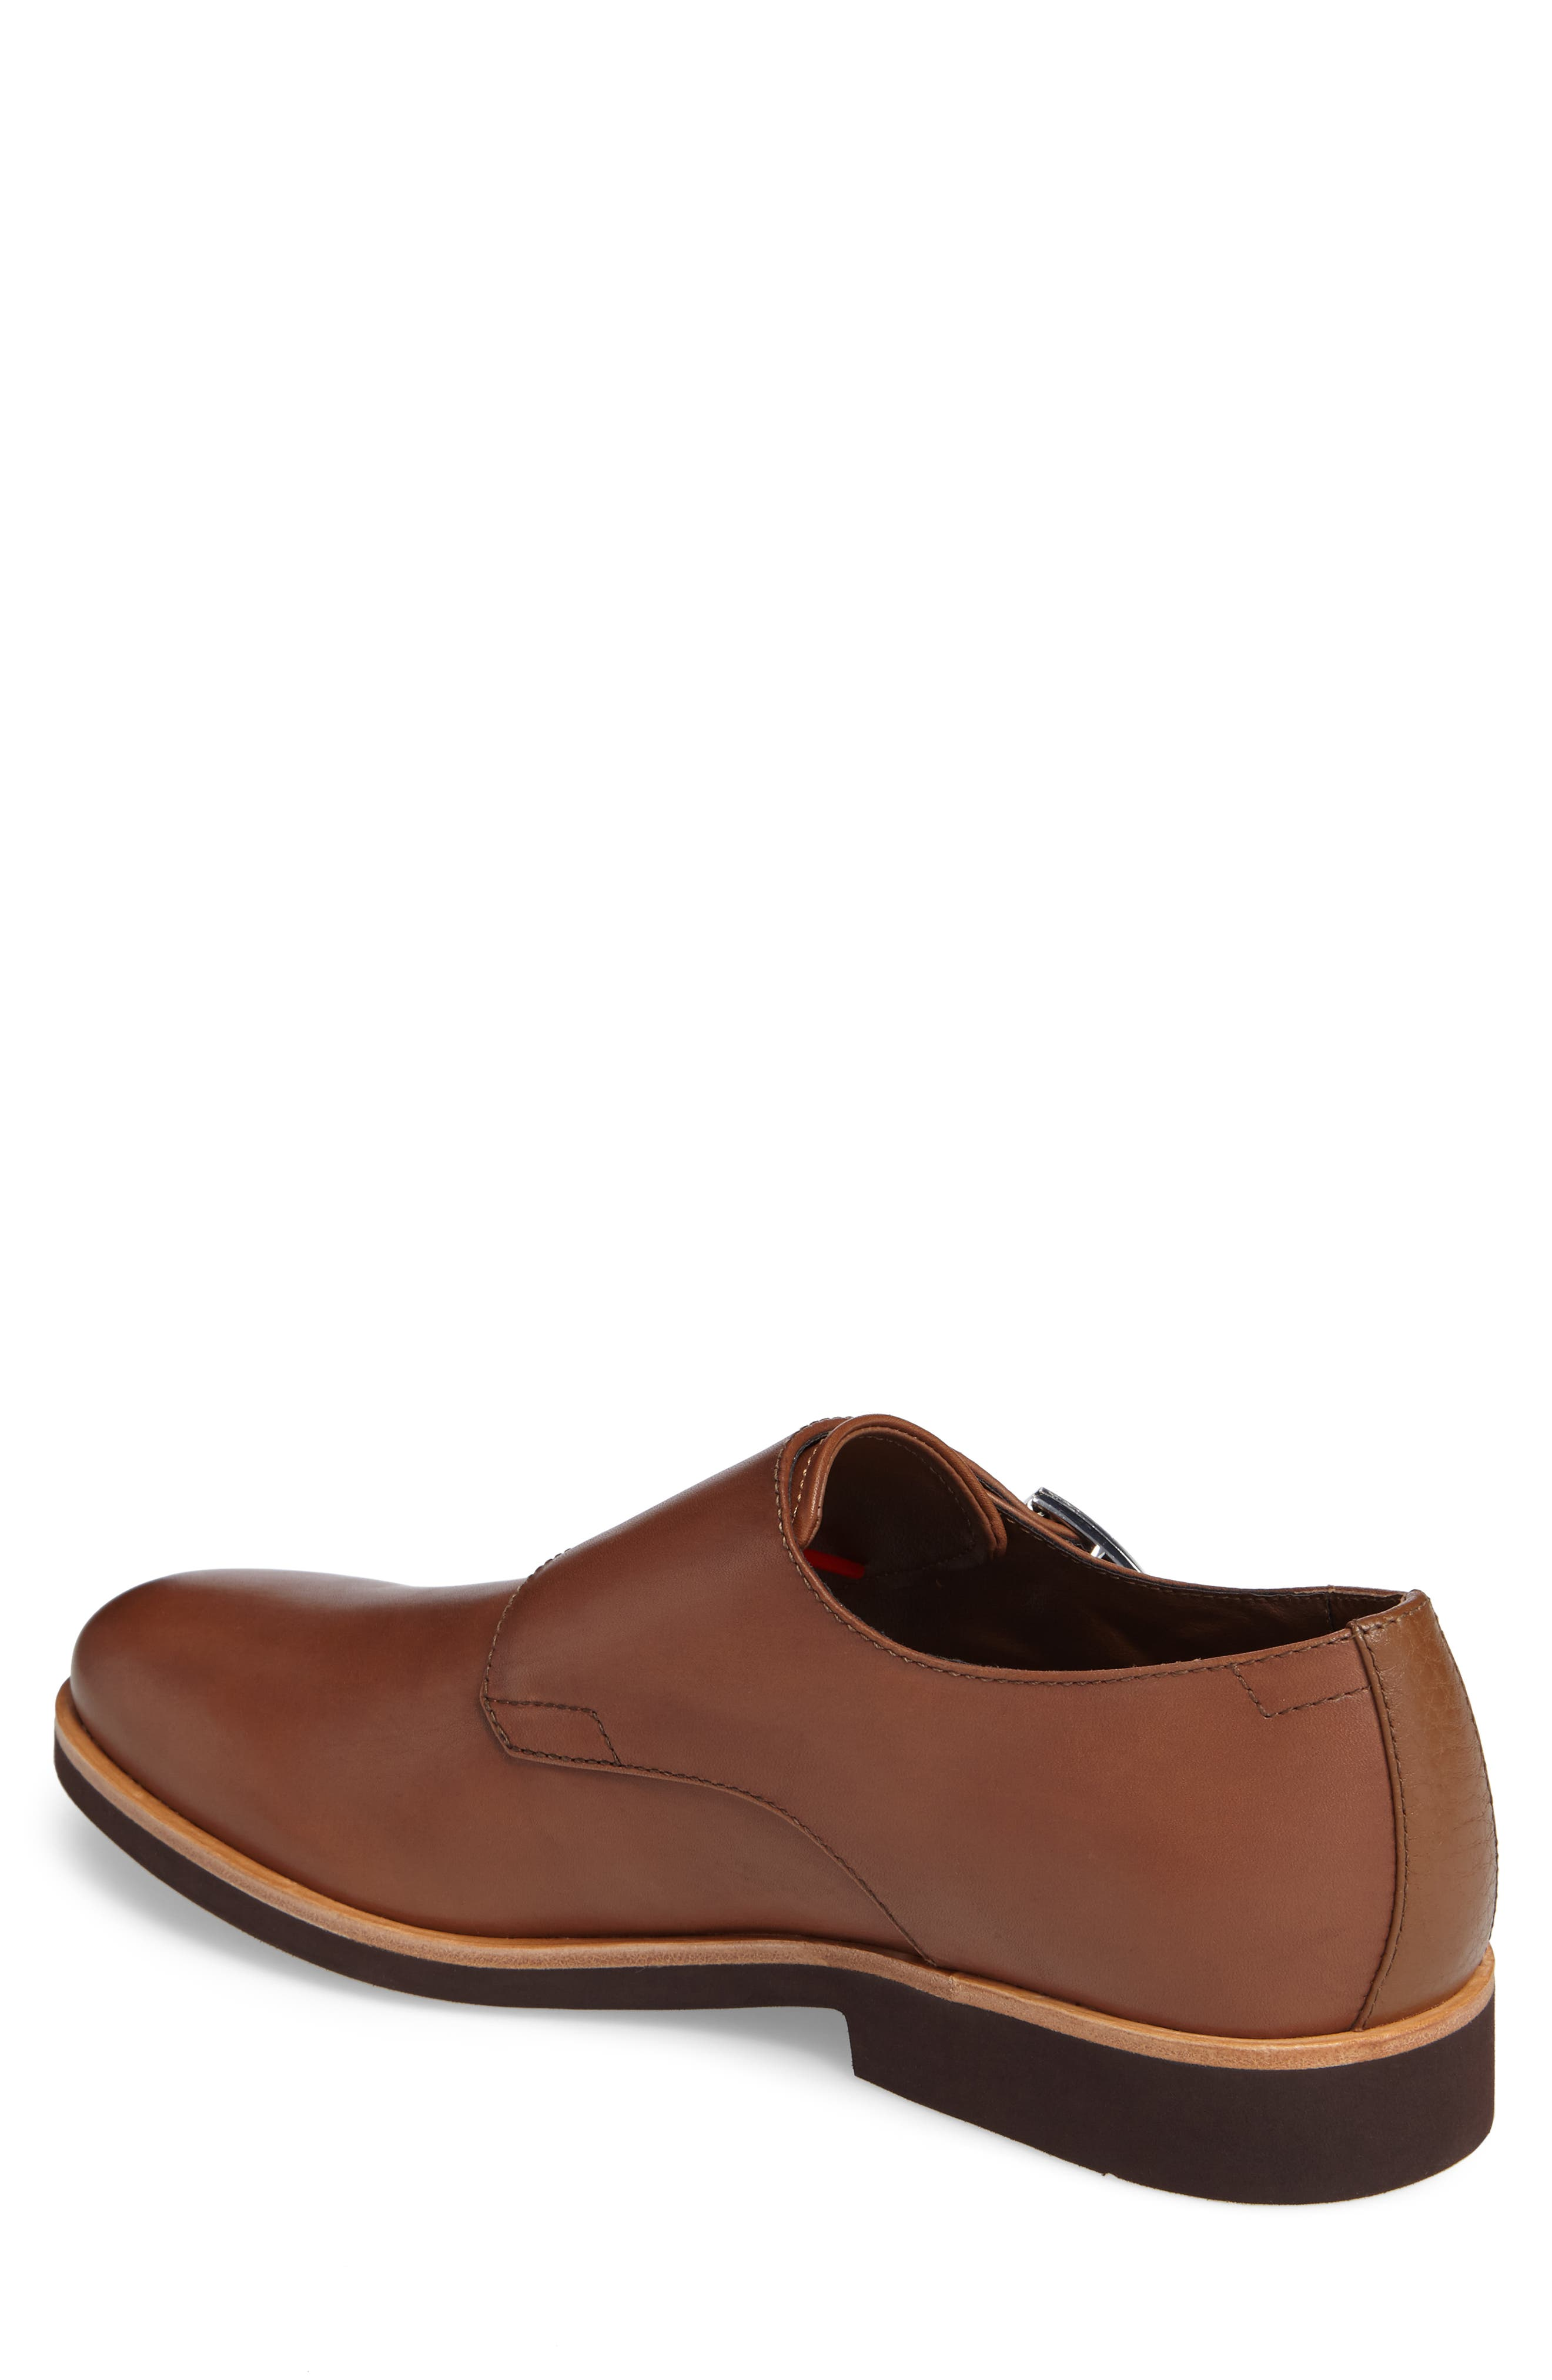 Finnegan Double Monk Strap Shoe,                             Alternate thumbnail 4, color,